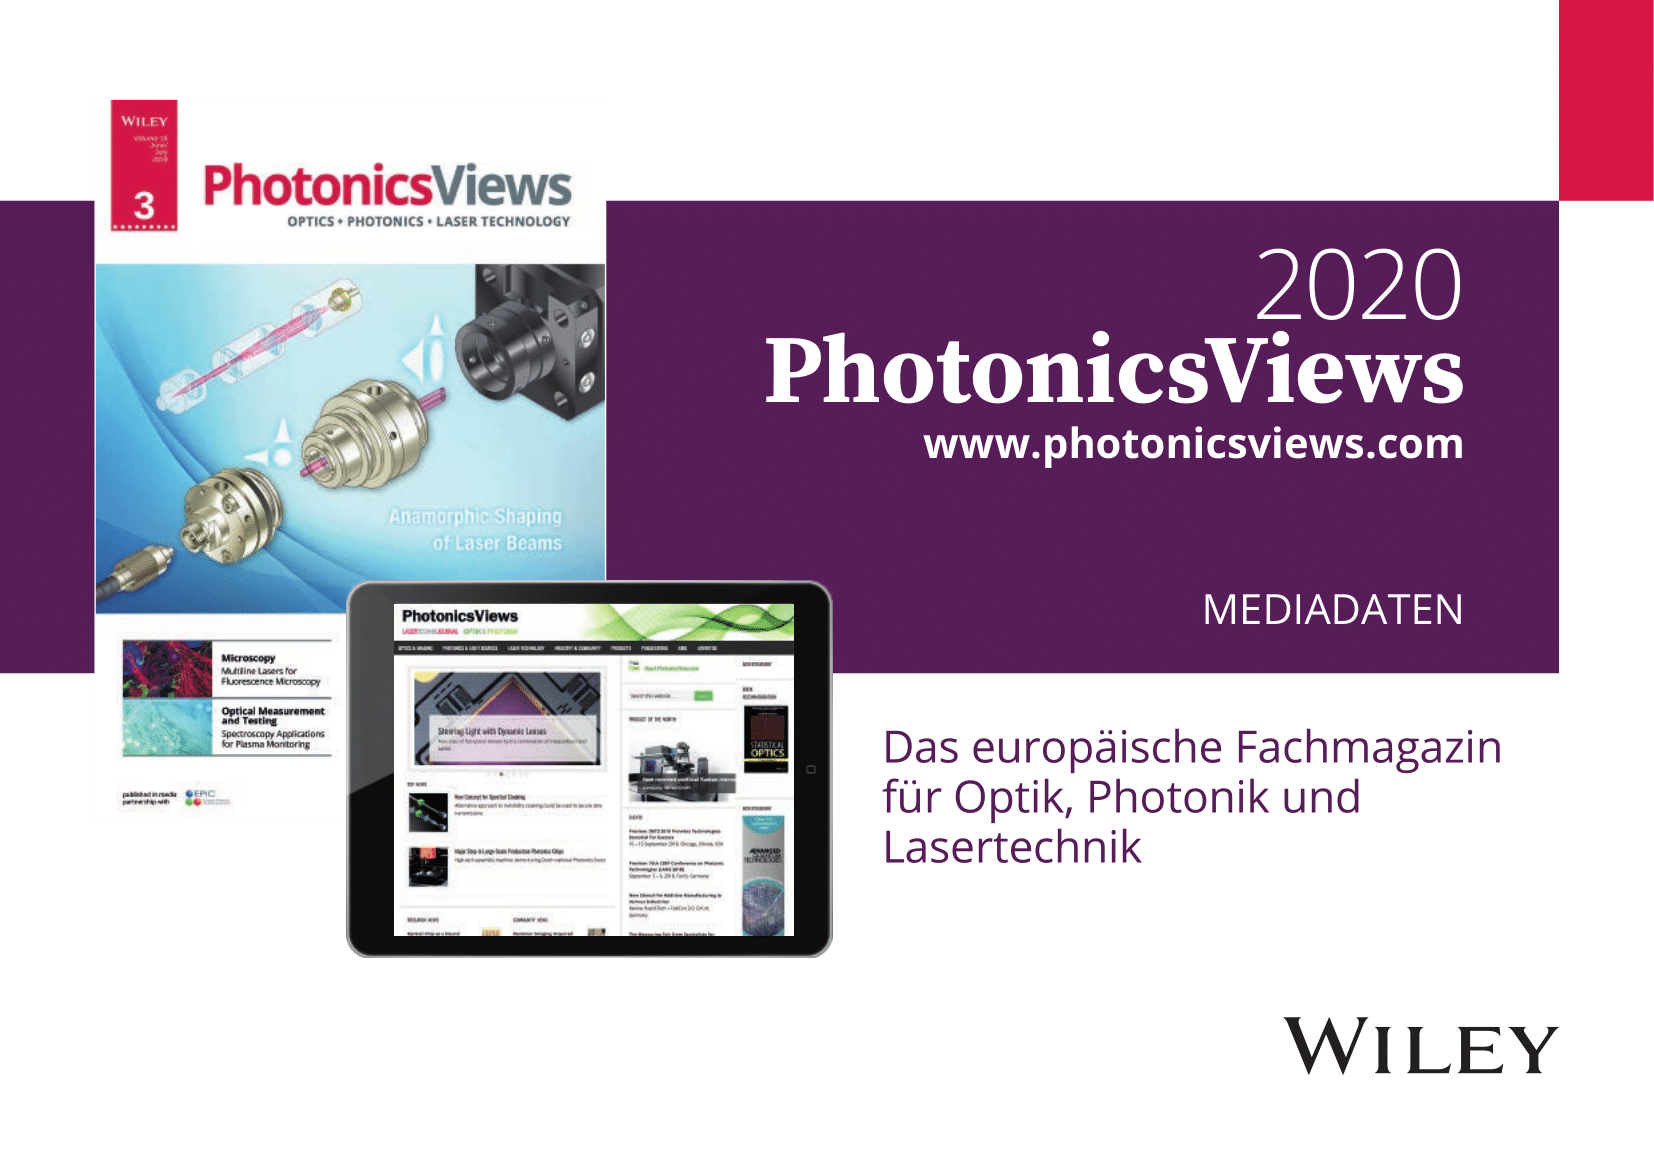 PhotonicsViews